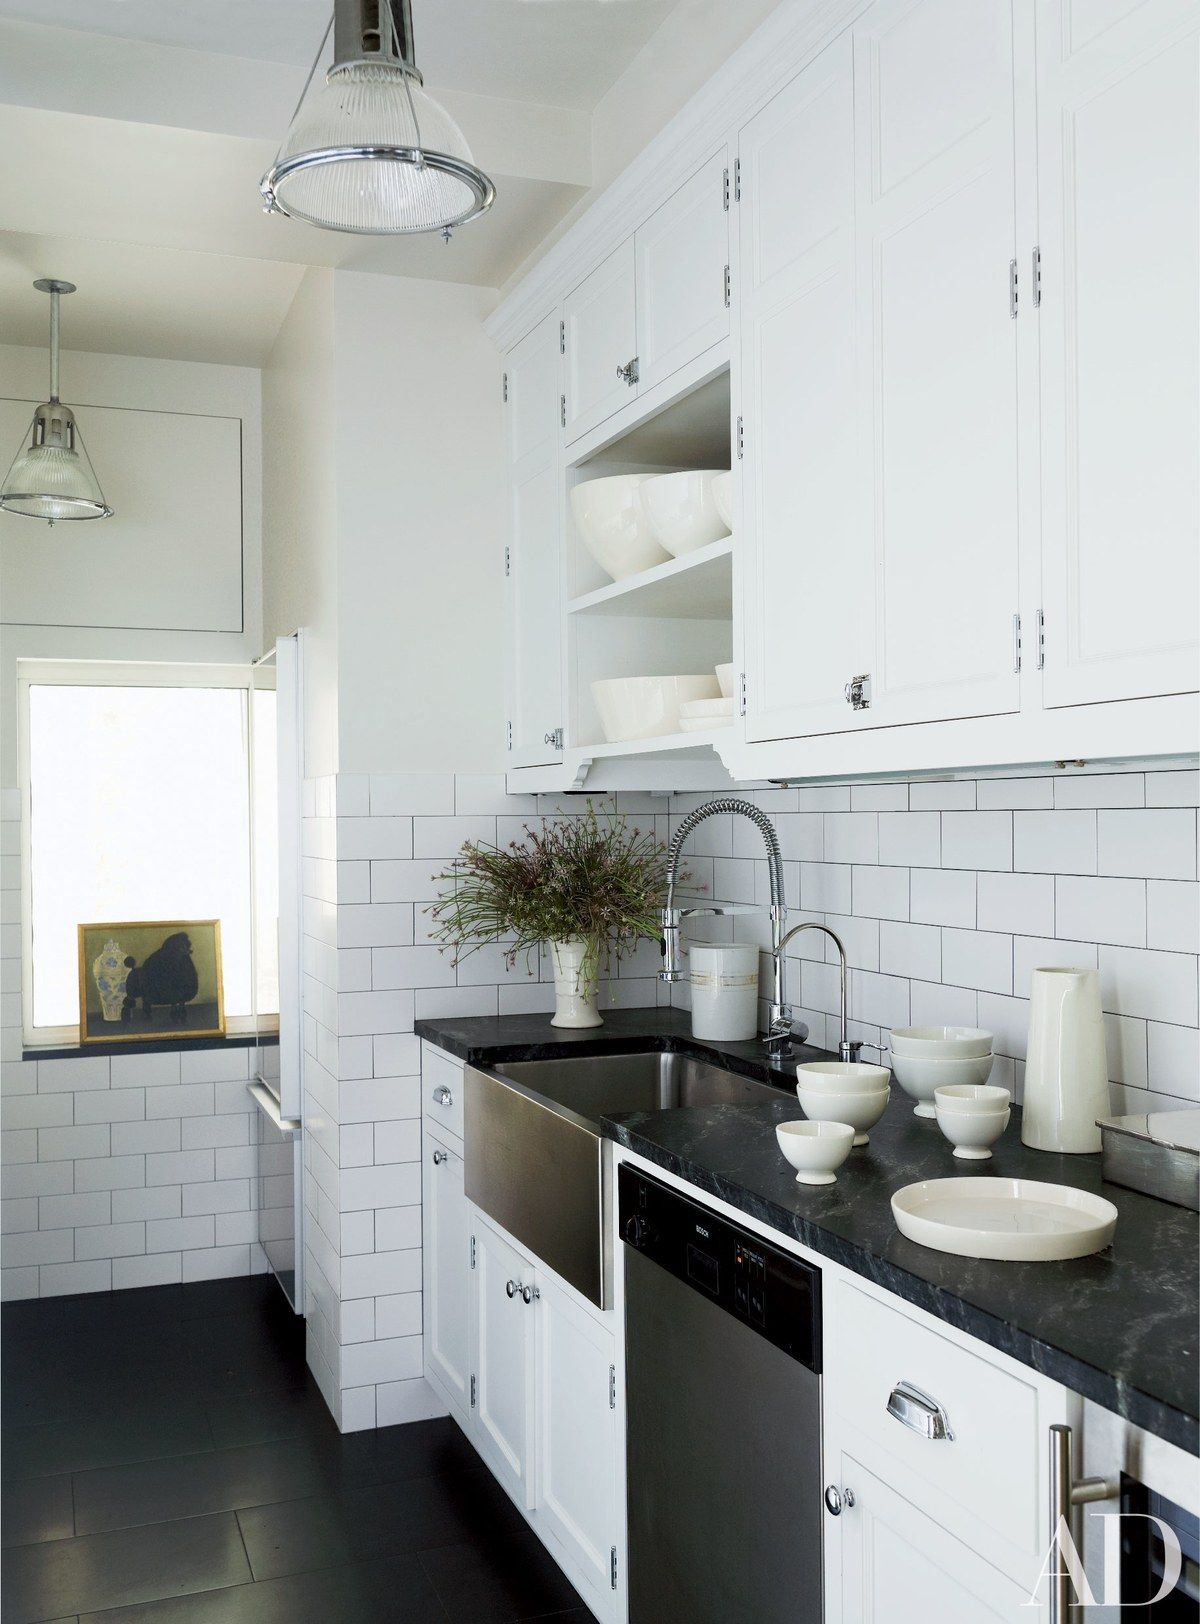 Subway tile by Nemo Tile Co. lines the kitchen of a classic prewar ...